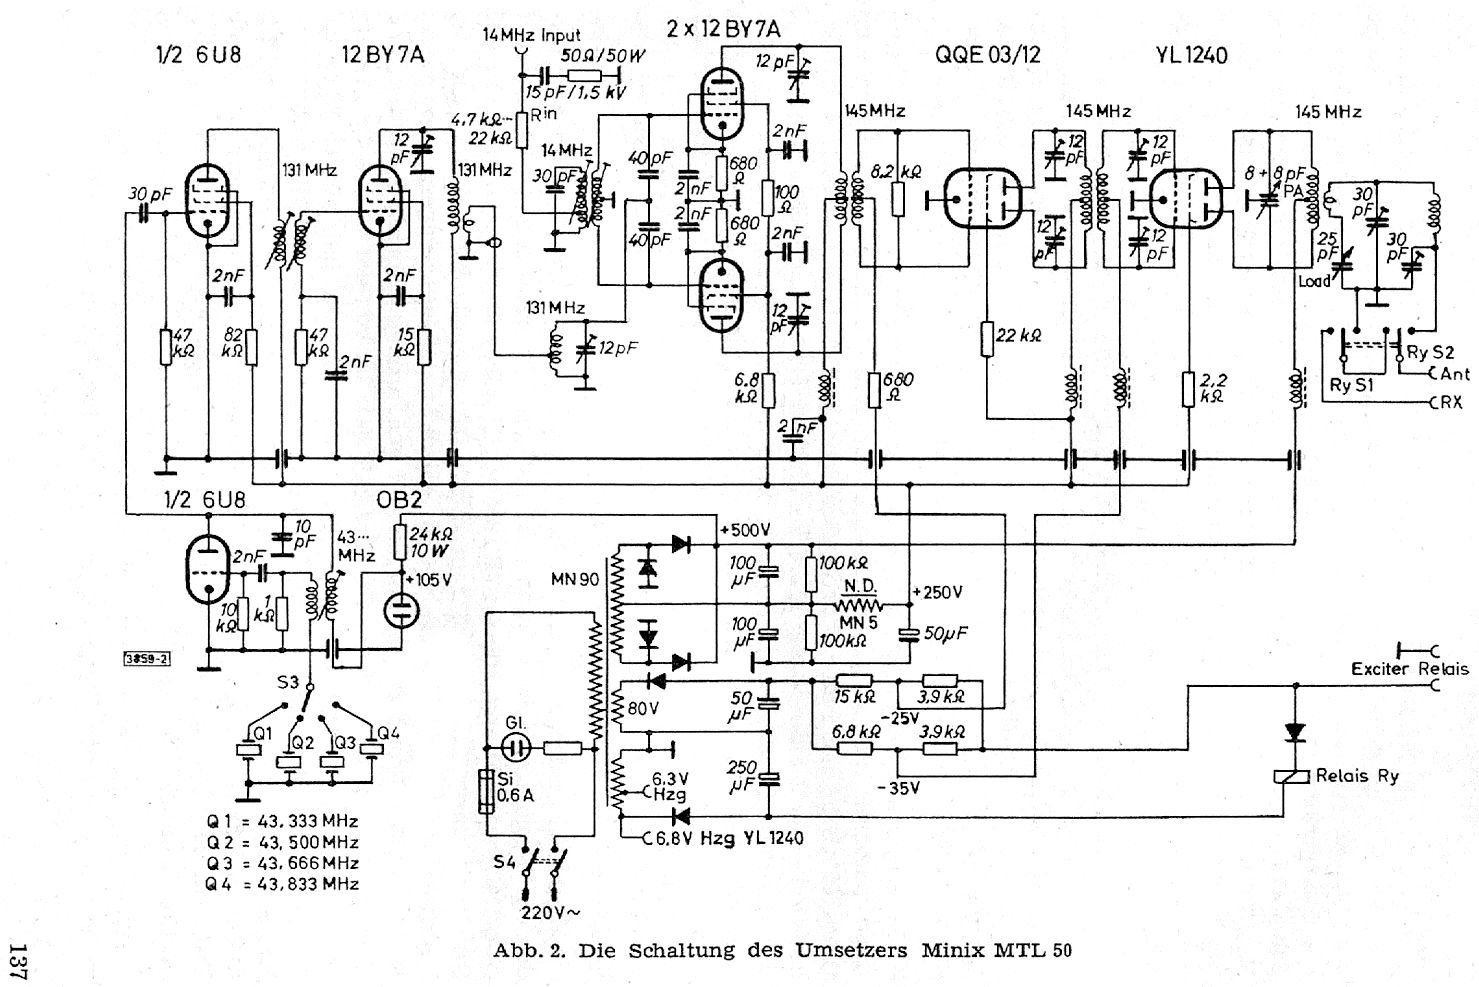 D150 Wiring Diagram. 1991 dodge d150 wiring help please